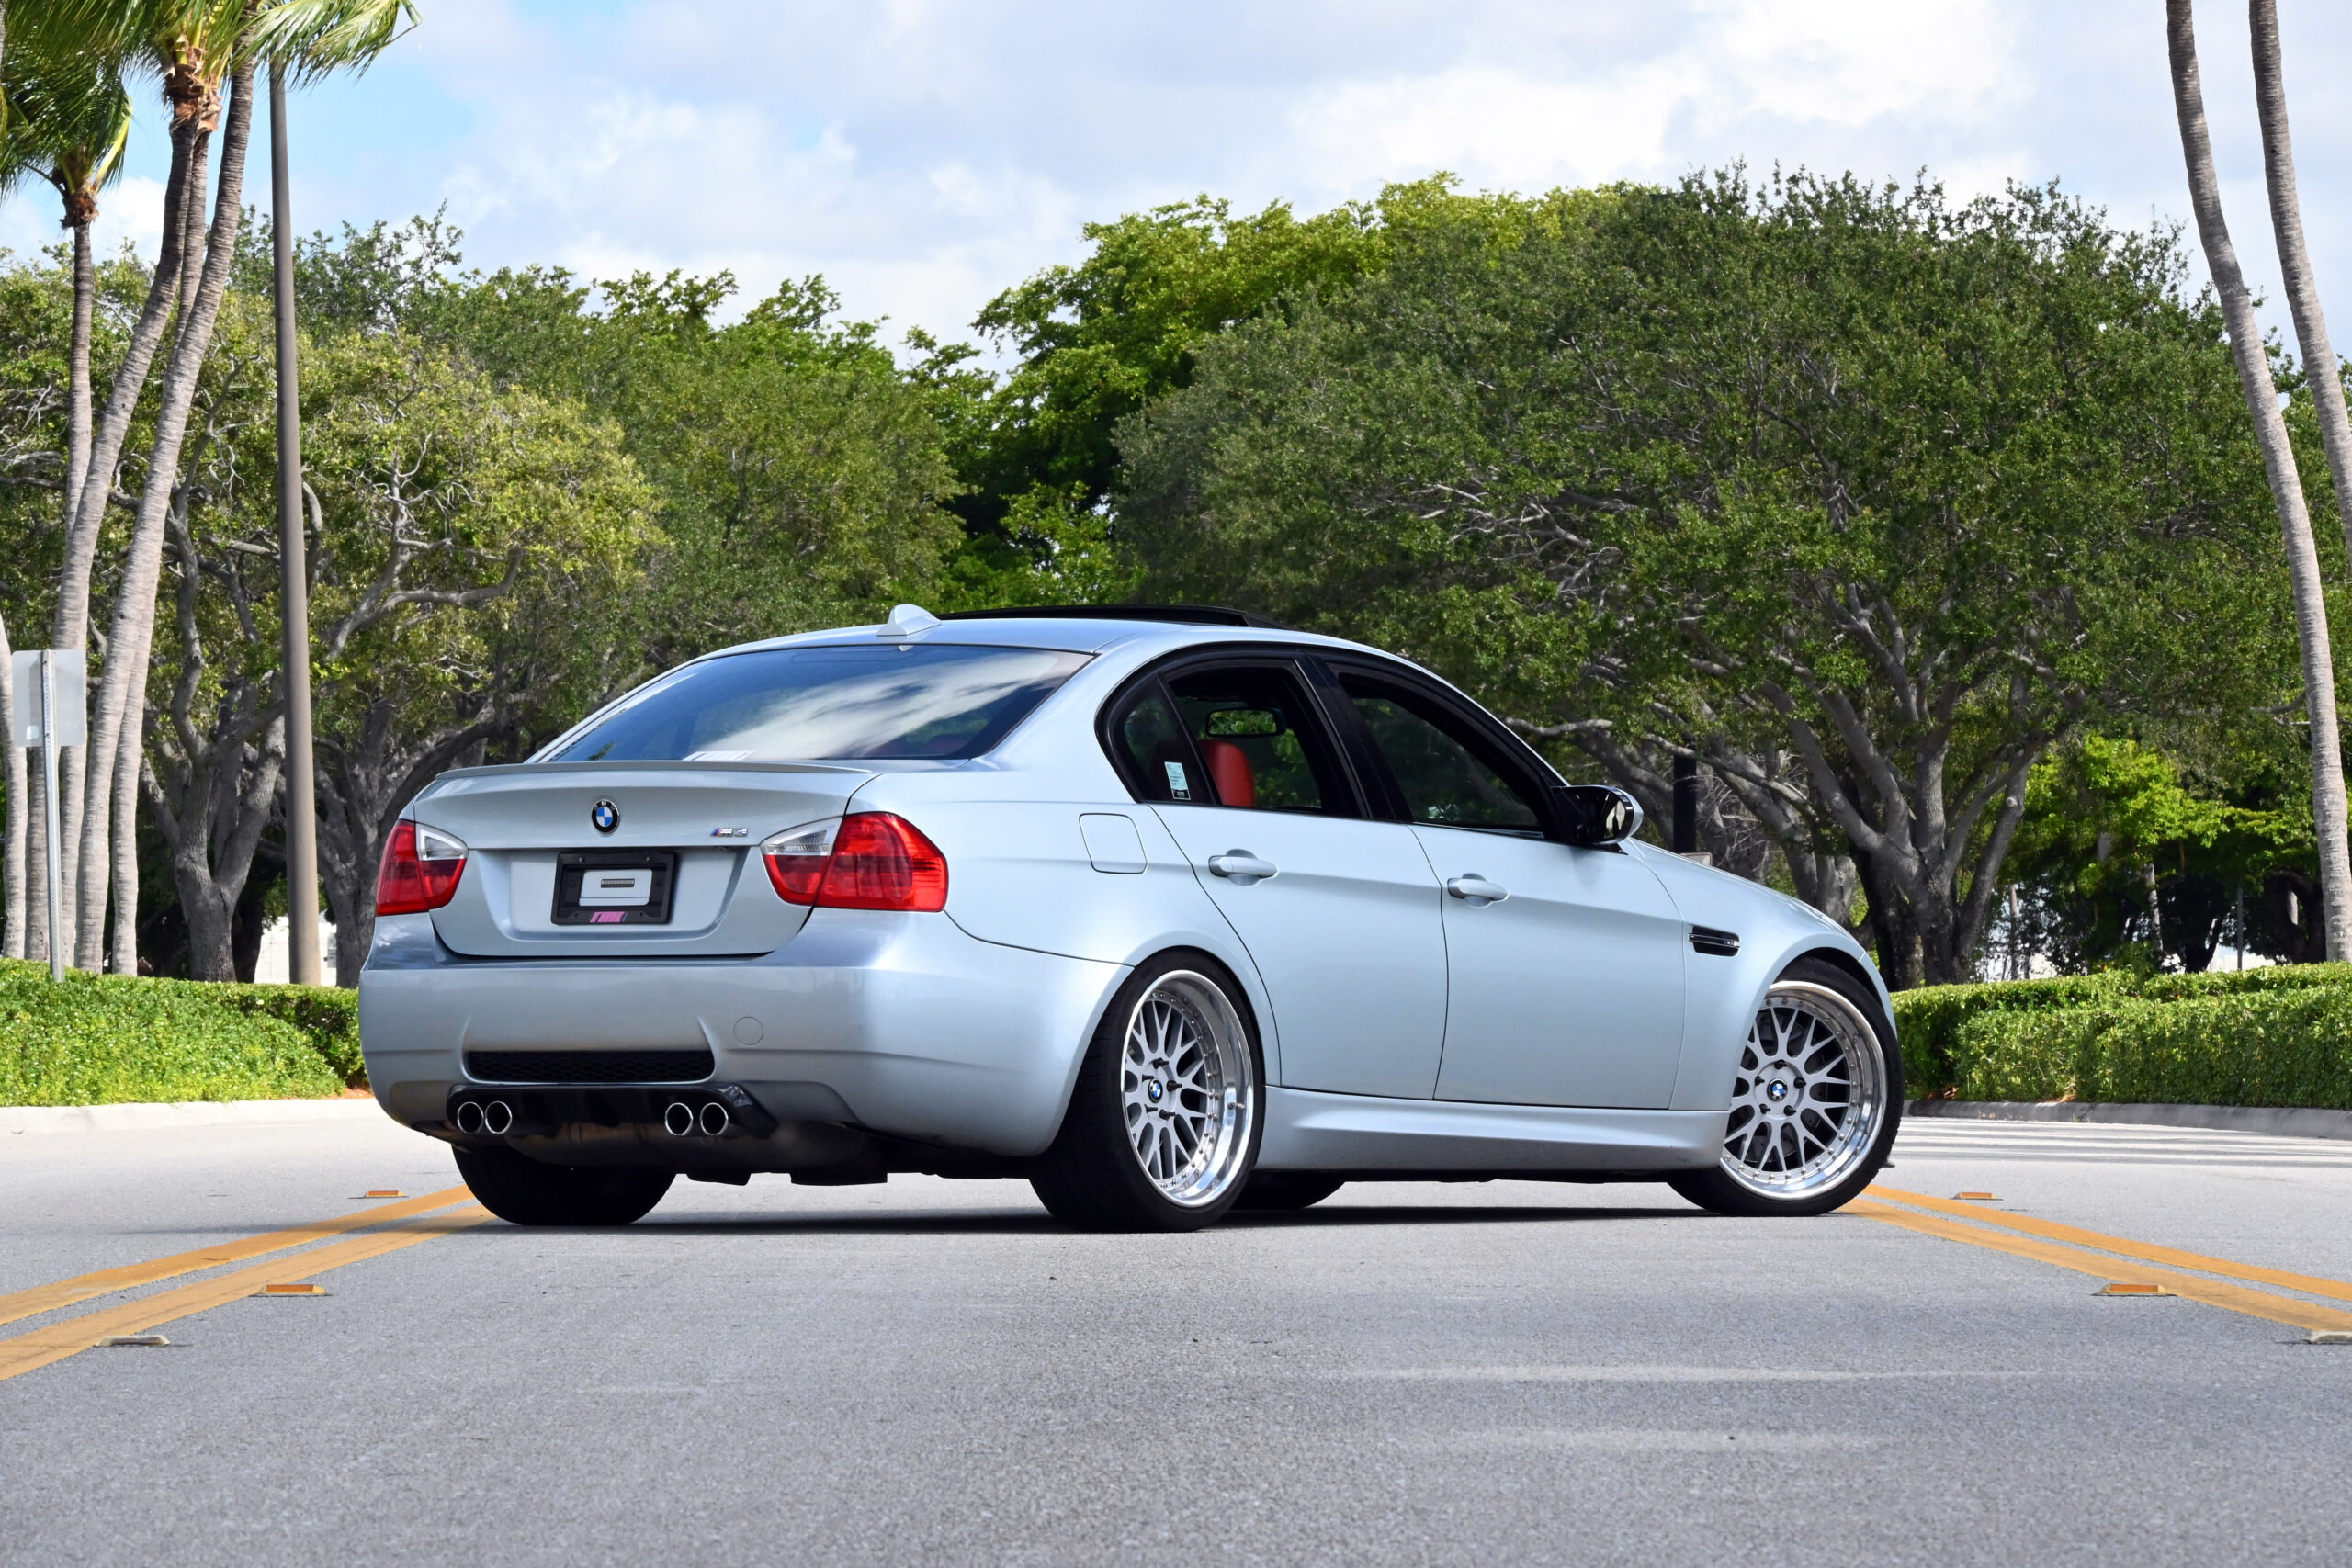 2008 BMW M3, 6-SPEED MANUAL, extensive options list, rod bearings, extended leather, turn key